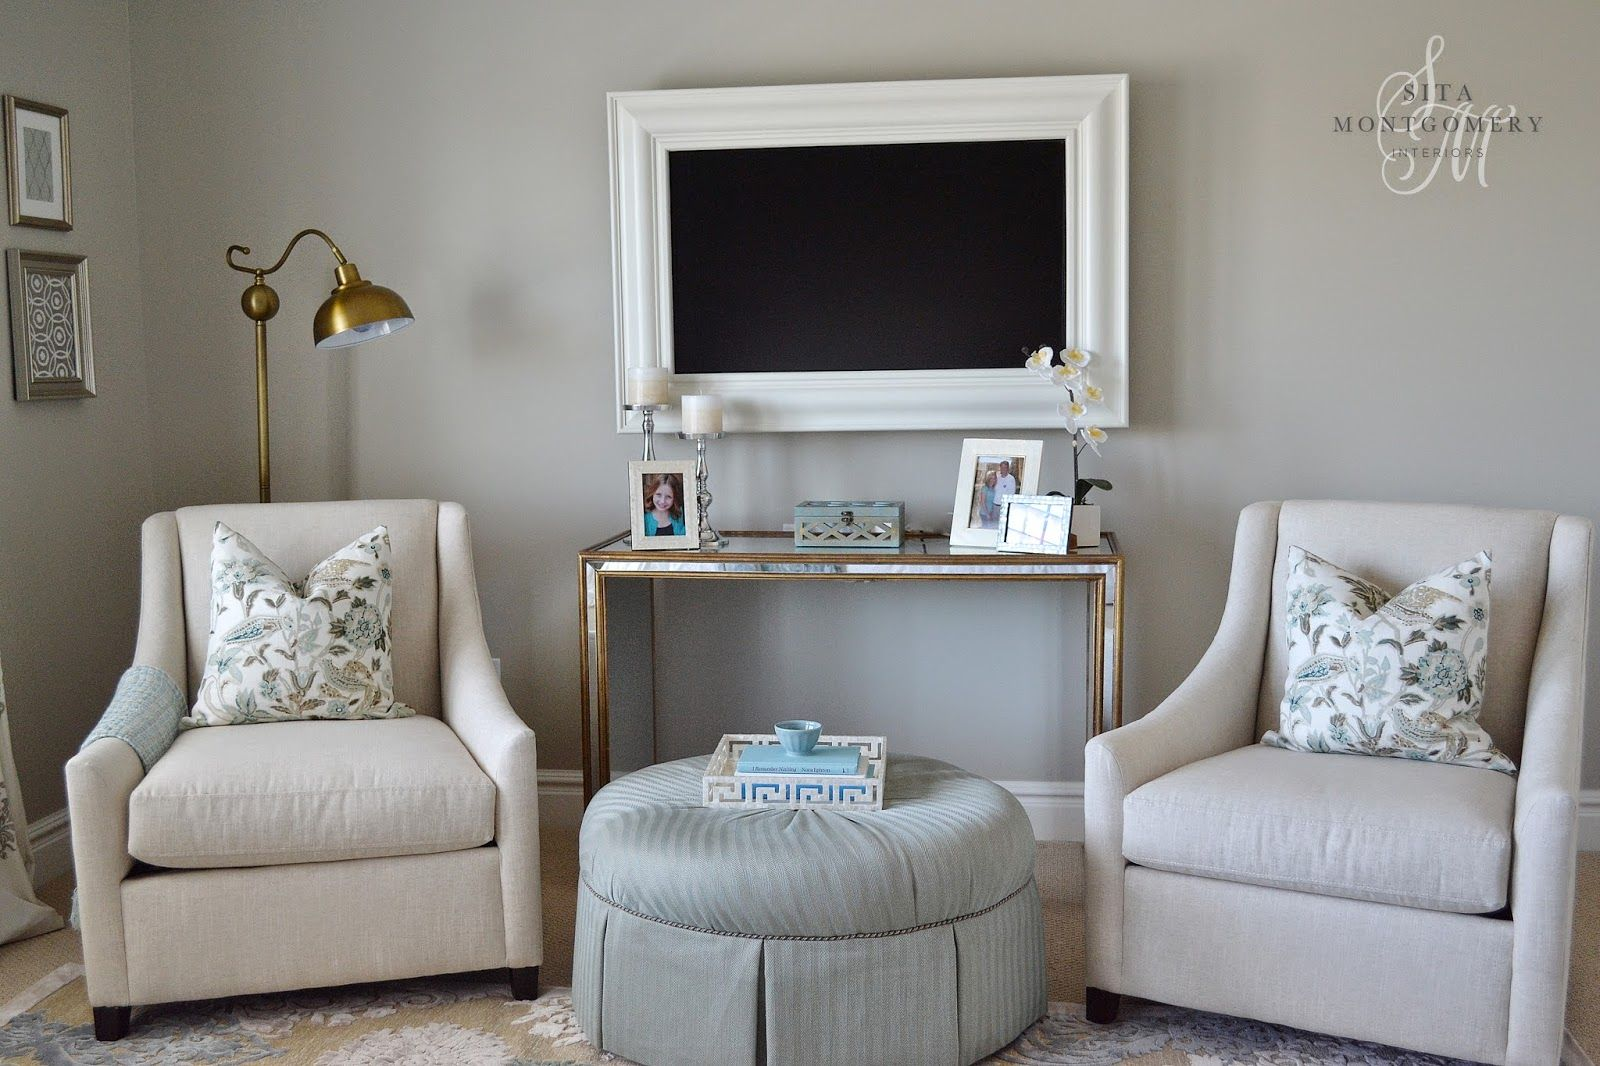 Sita Montgomery Interiors: Sita Montgomery Interiors: Local Client Project Reveal